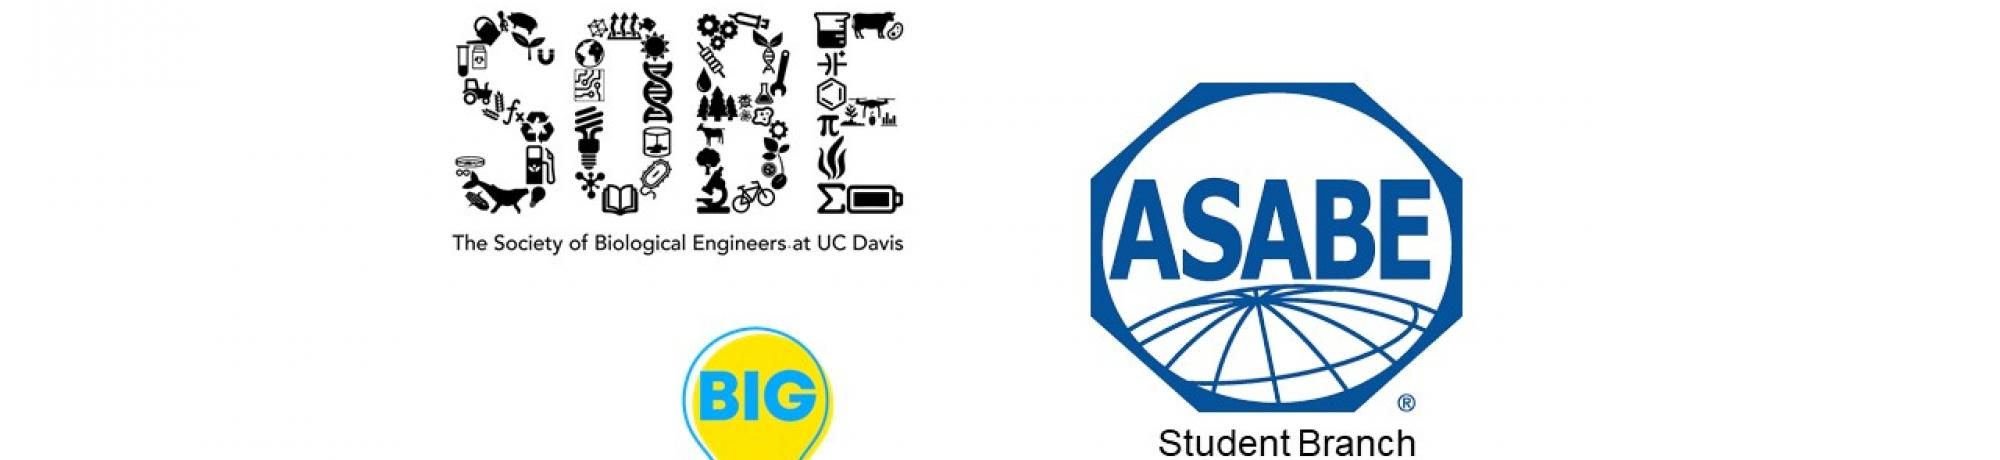 ASABE Student Branch, SOBE, BIG Biological and Agricultural Engineering Academic Clubs